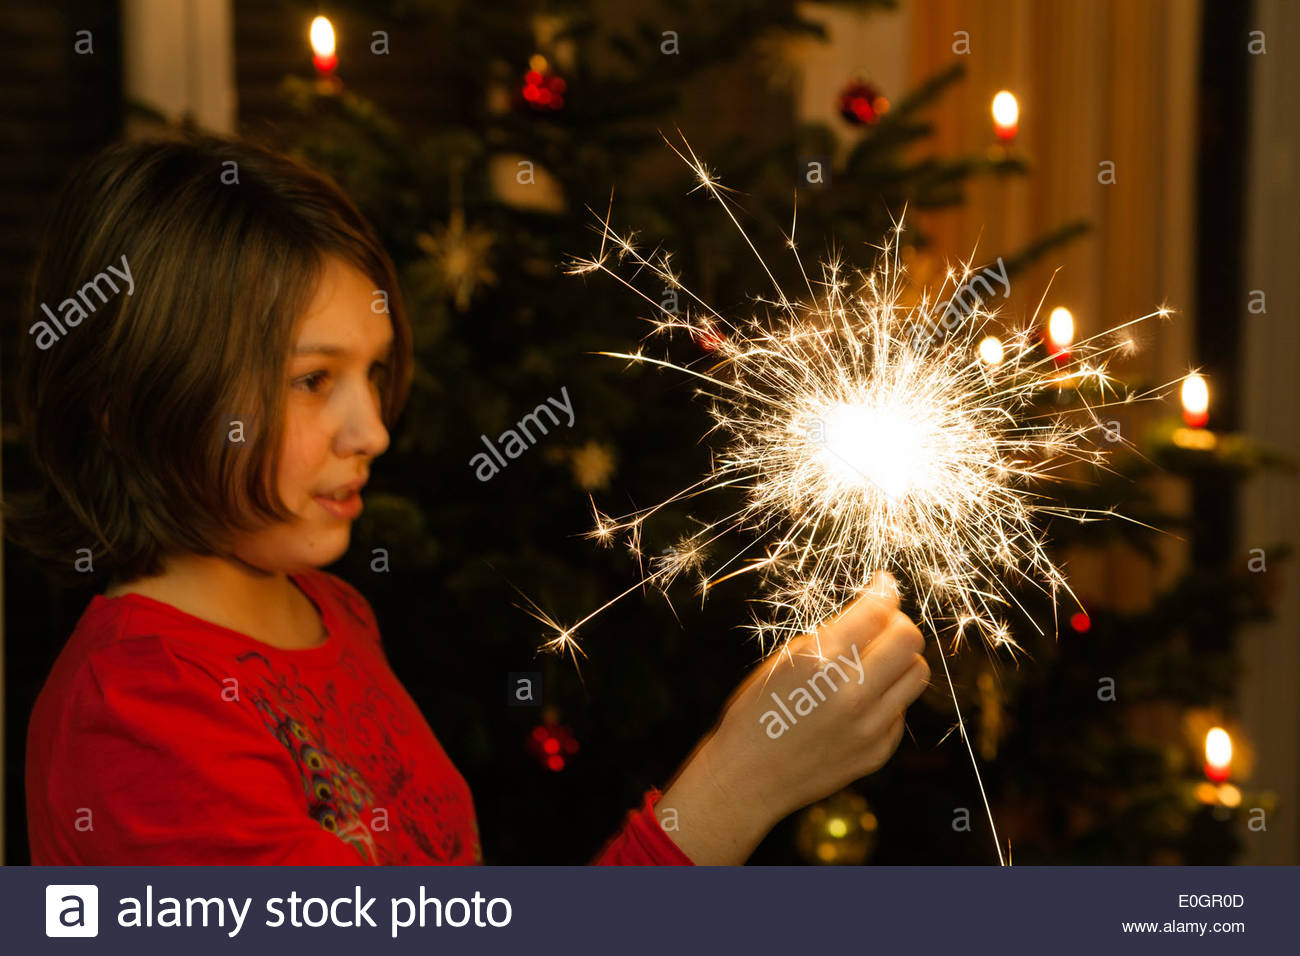 Girl holding a sparkler, christmas tree in background, Bavaria, Germany - Stock Image